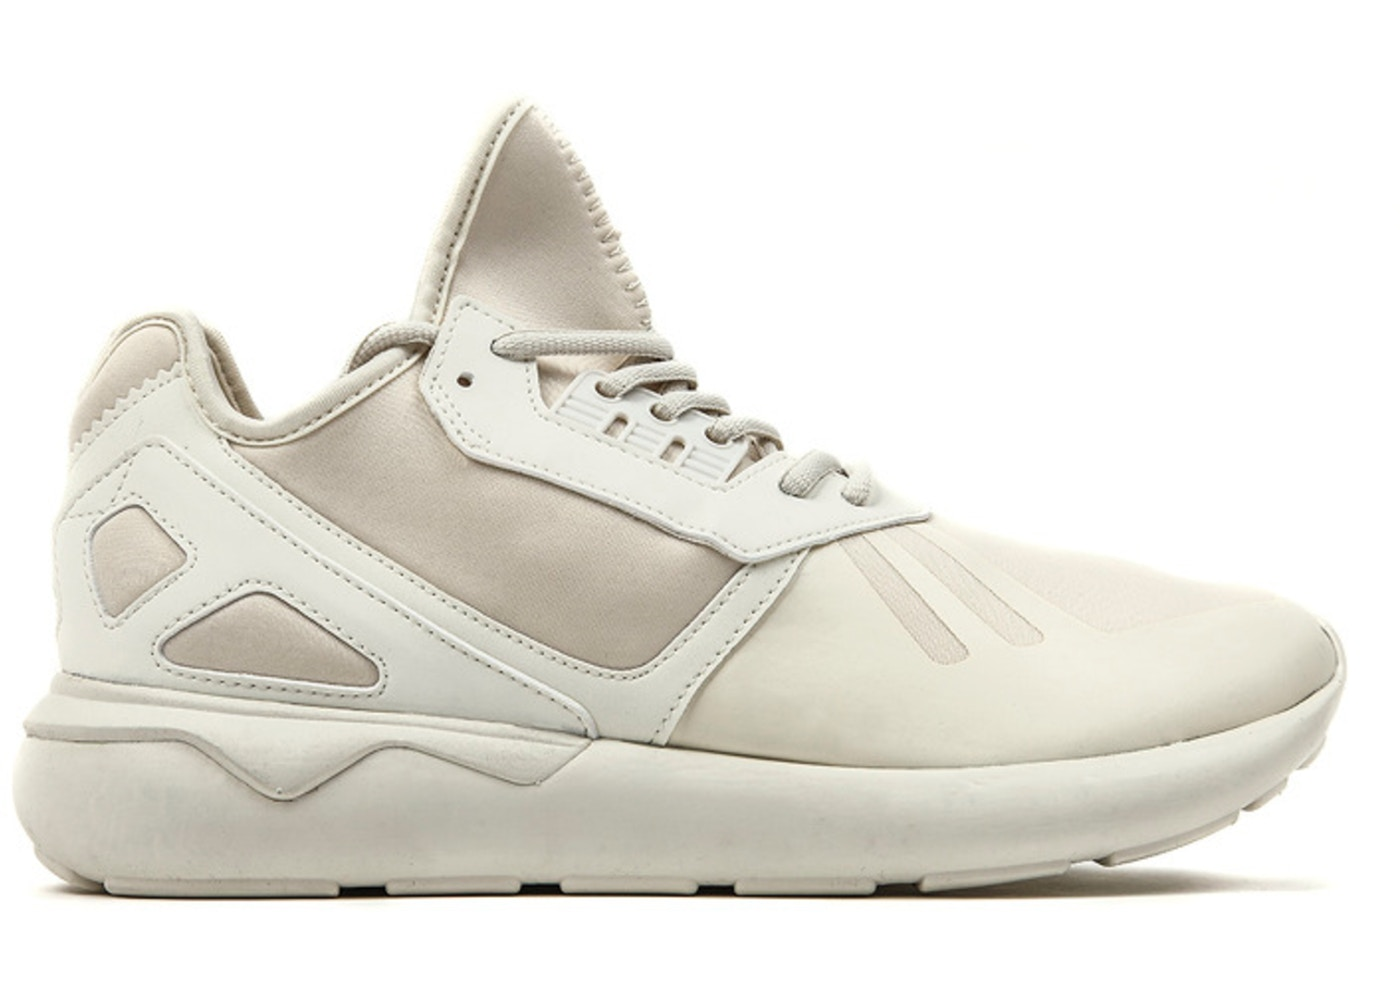 finest selection fd1b4 527ca adidas Tubular Runner SNS Shades of White